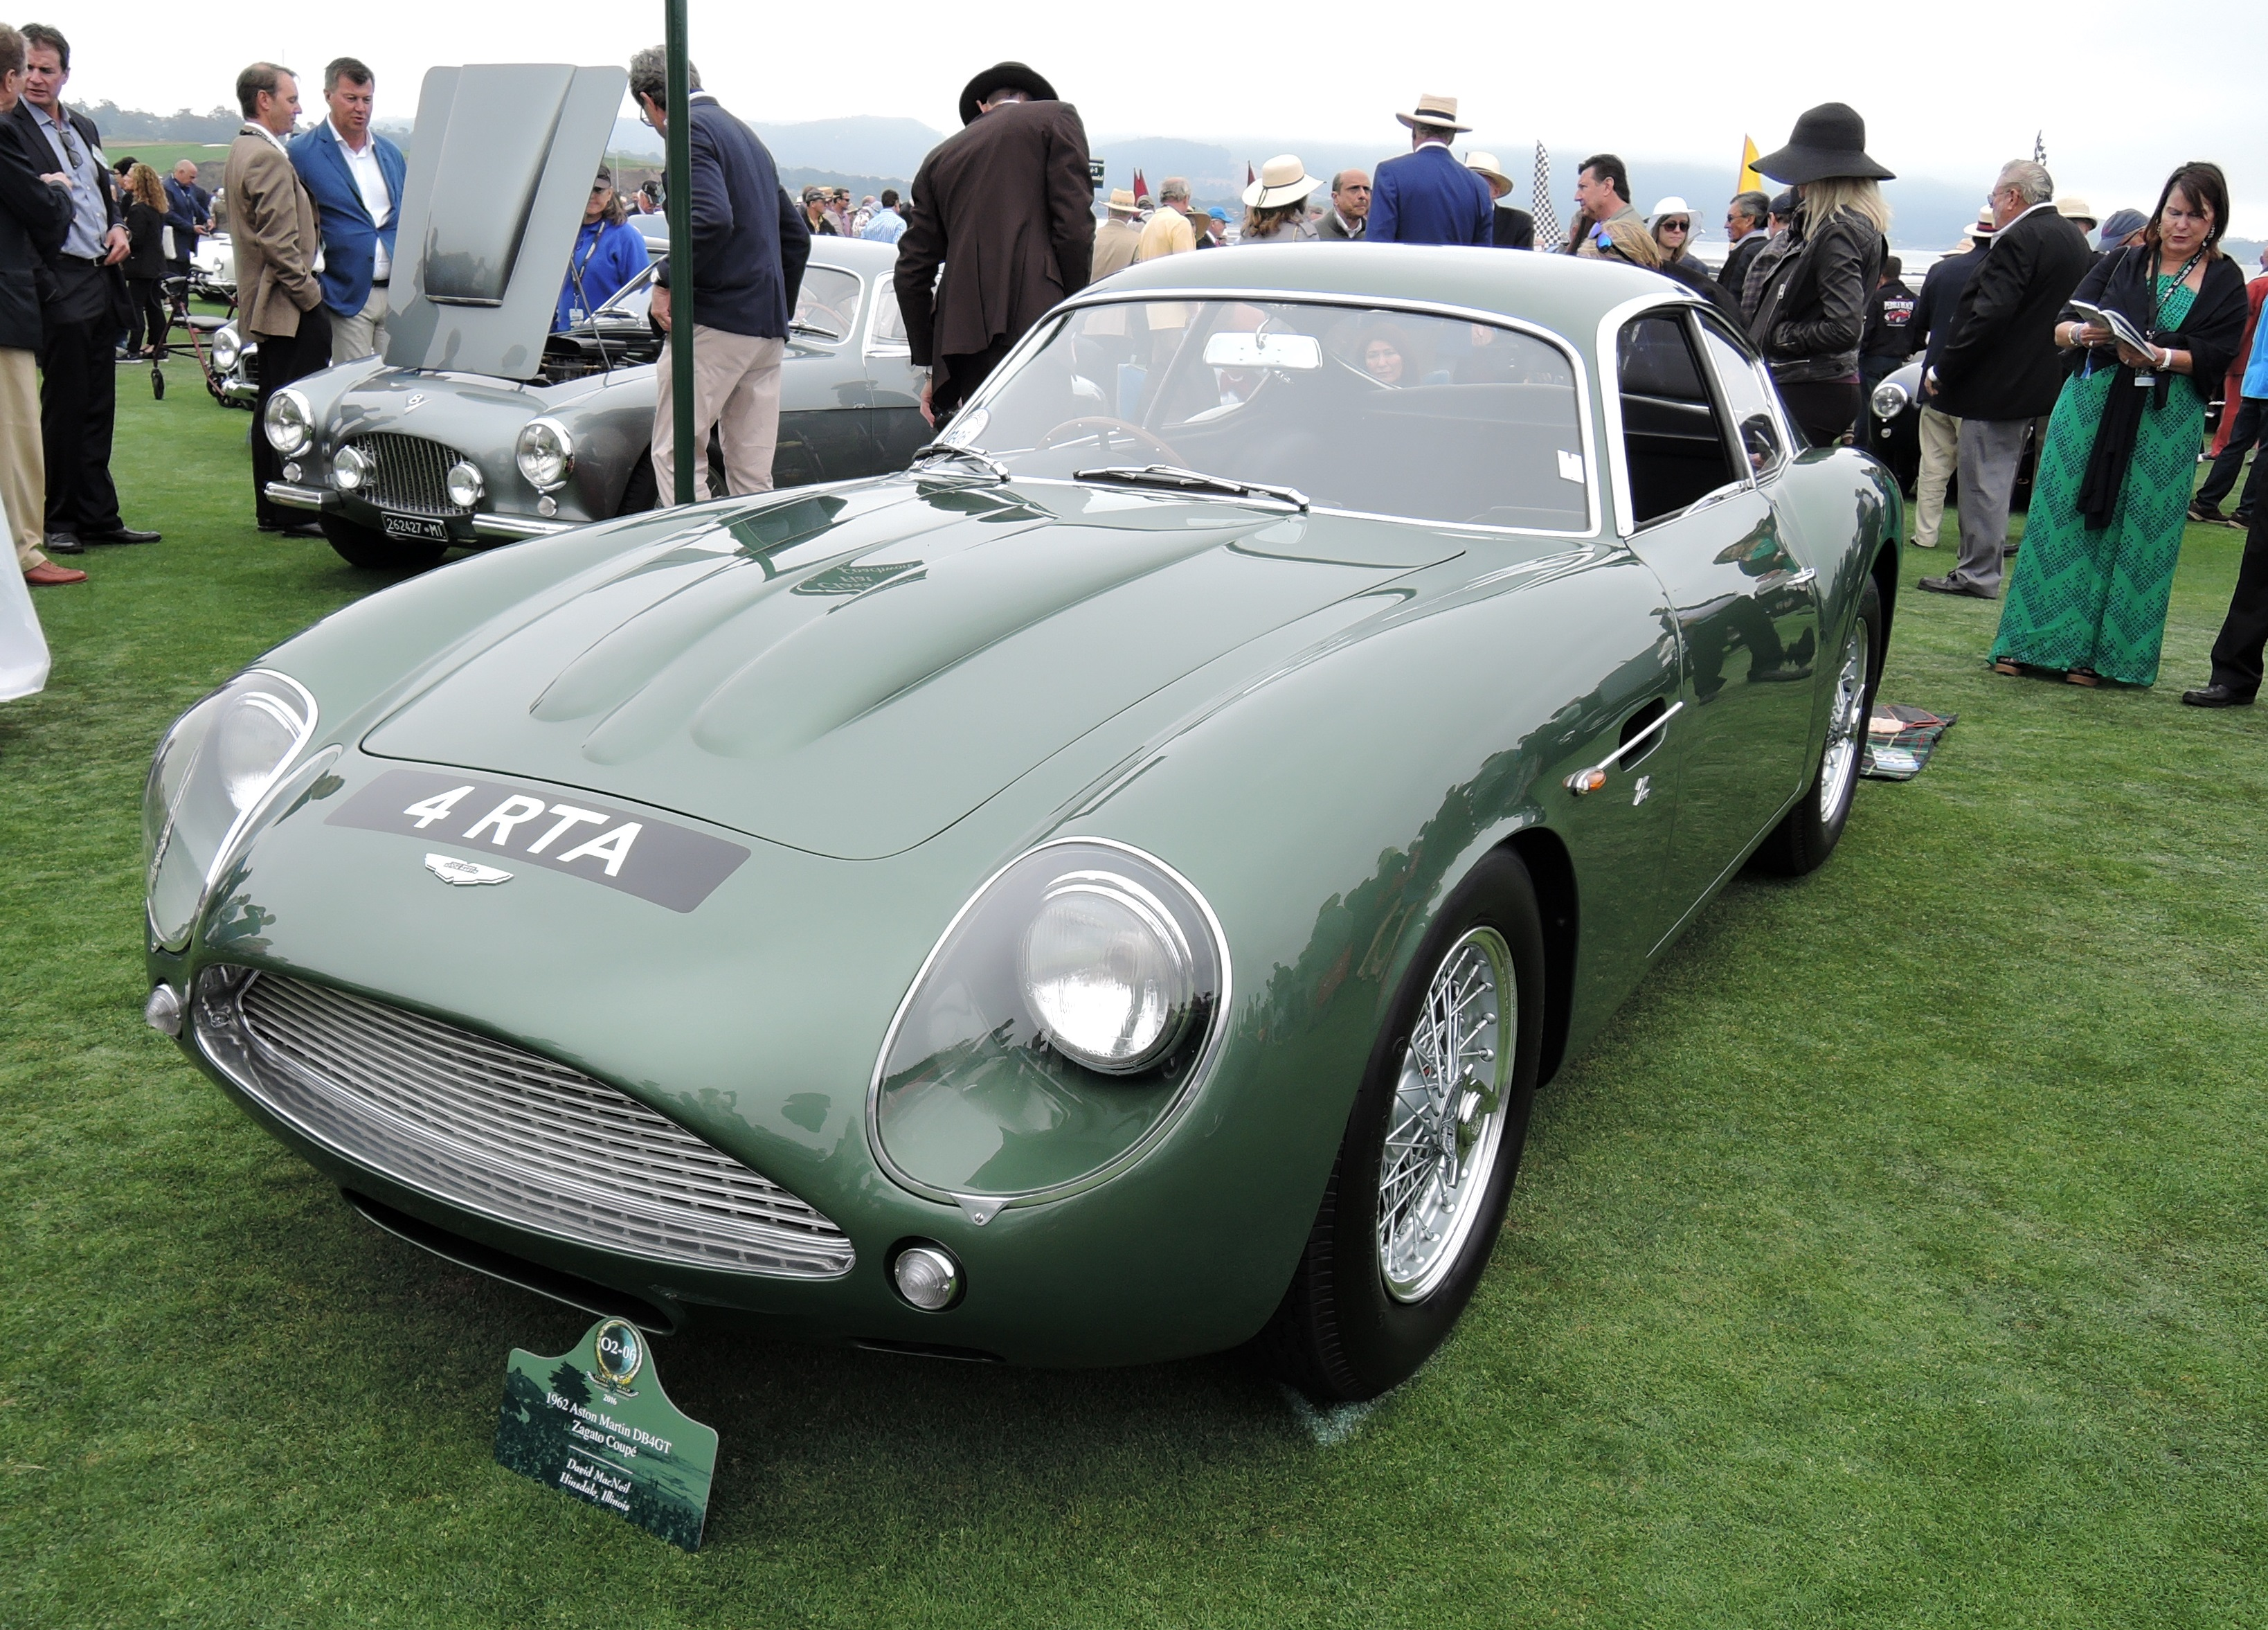 green 1962 Aston Martin DB4 GT Coupe - Pebble Beach Concours d'Elegance 2016